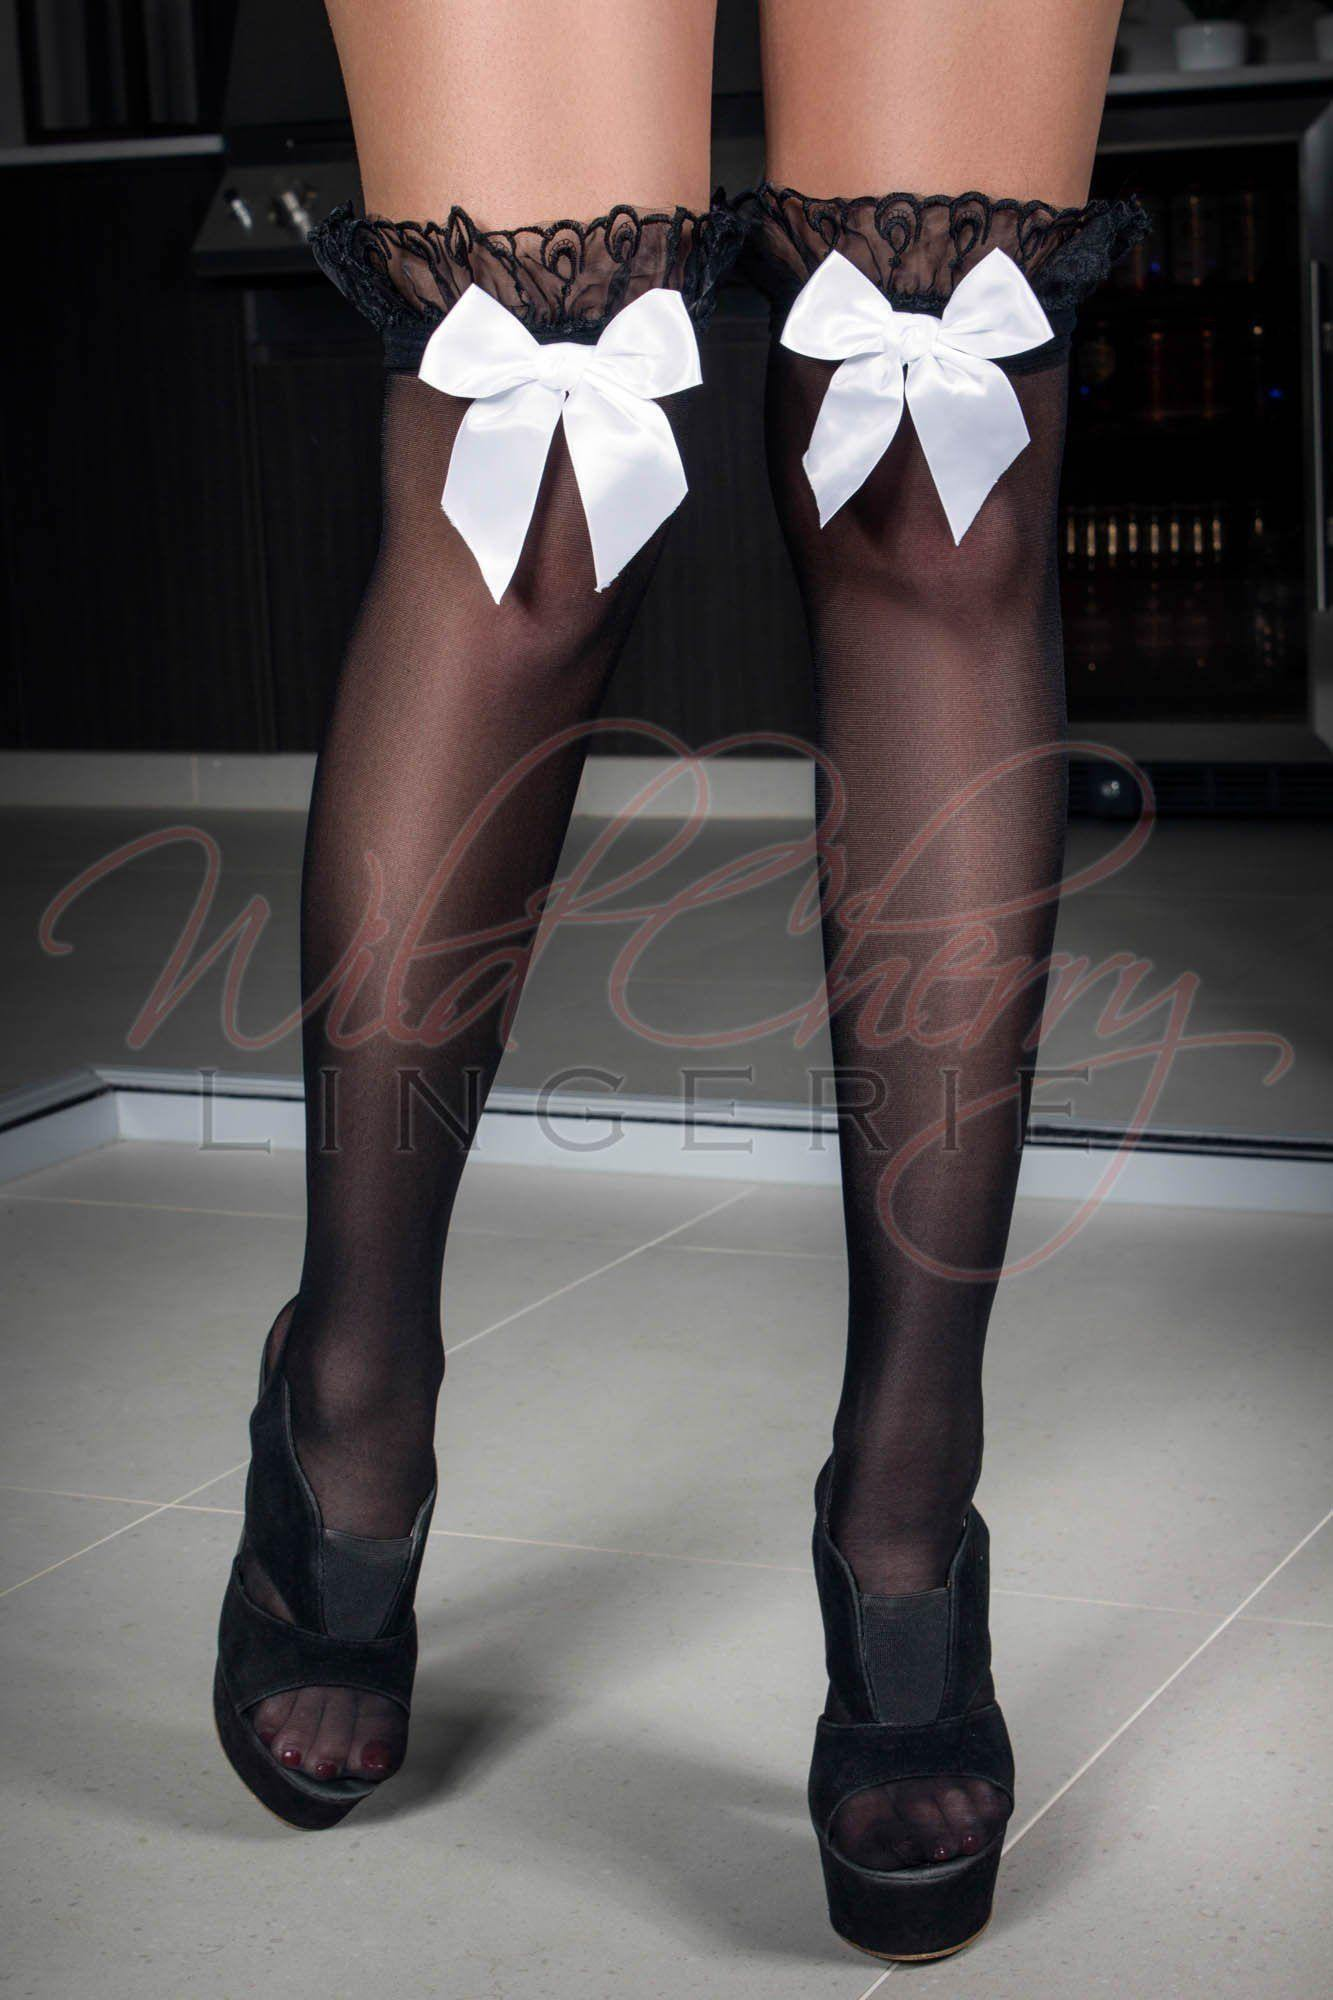 Black and White Bow Stockings, Legwear, Unbranded - Wild Cherry Lingerie